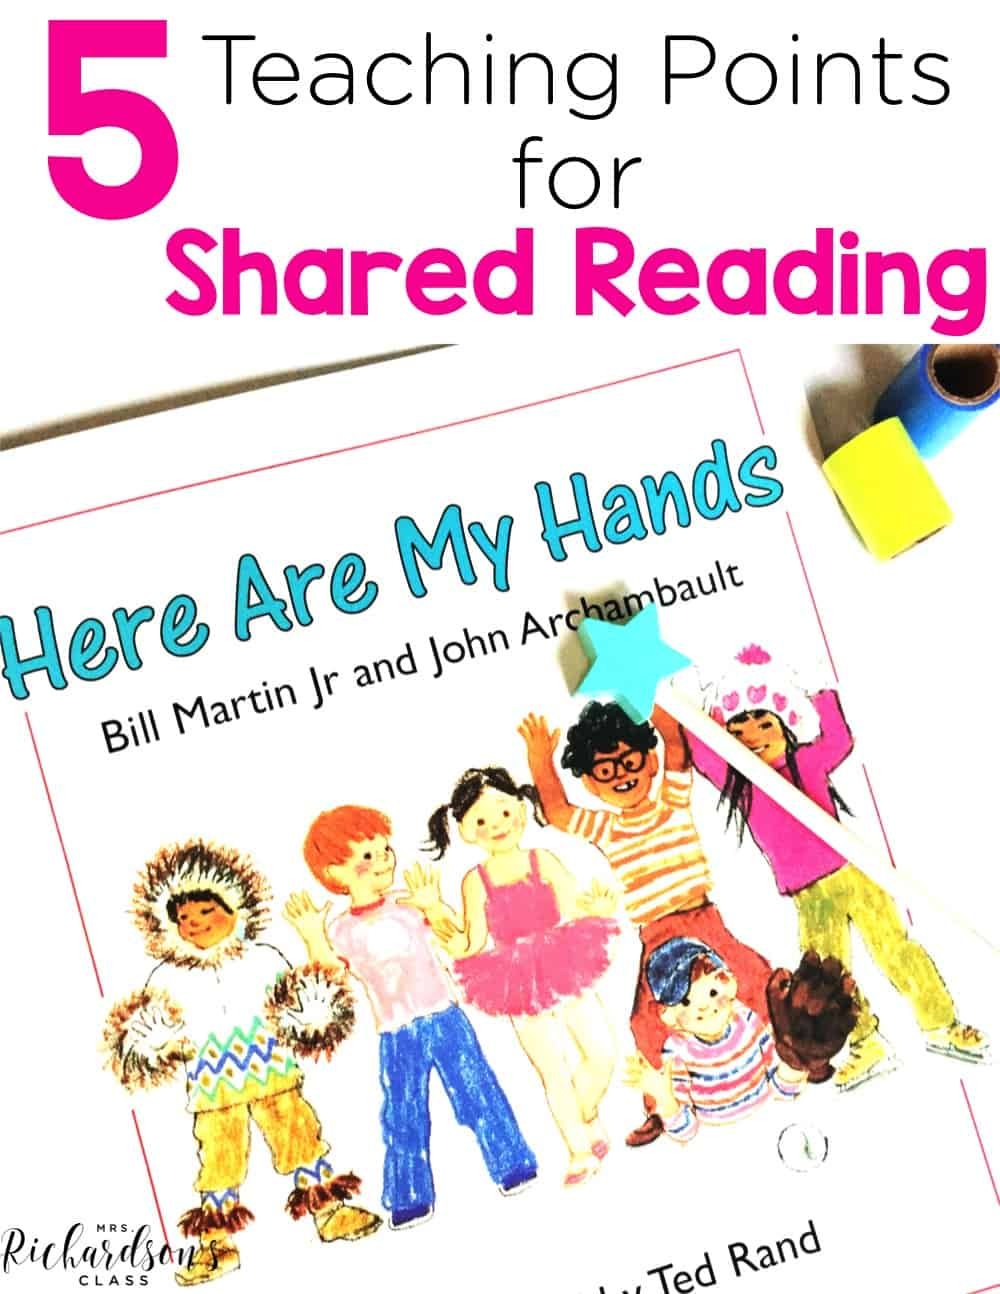 Do you struggle with knowing what to teach during shared reading? These teaching points will help guide you! Make the most of this important elemtn of balanced literacy with your kindergarten and first grade students!